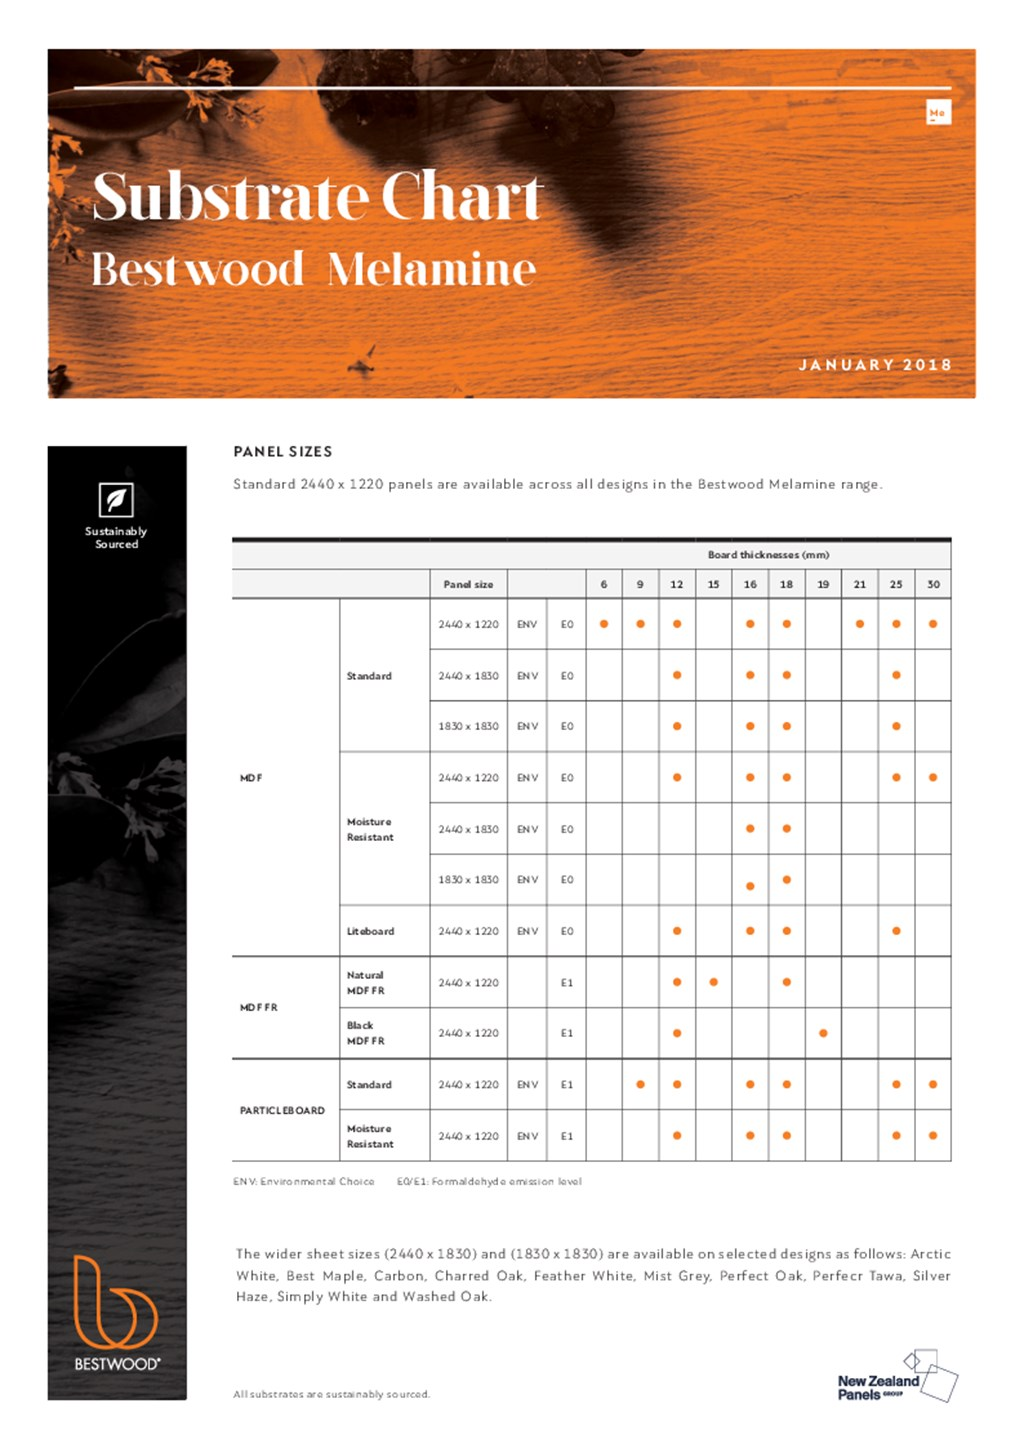 Bestwood Melamine Substrate Chart